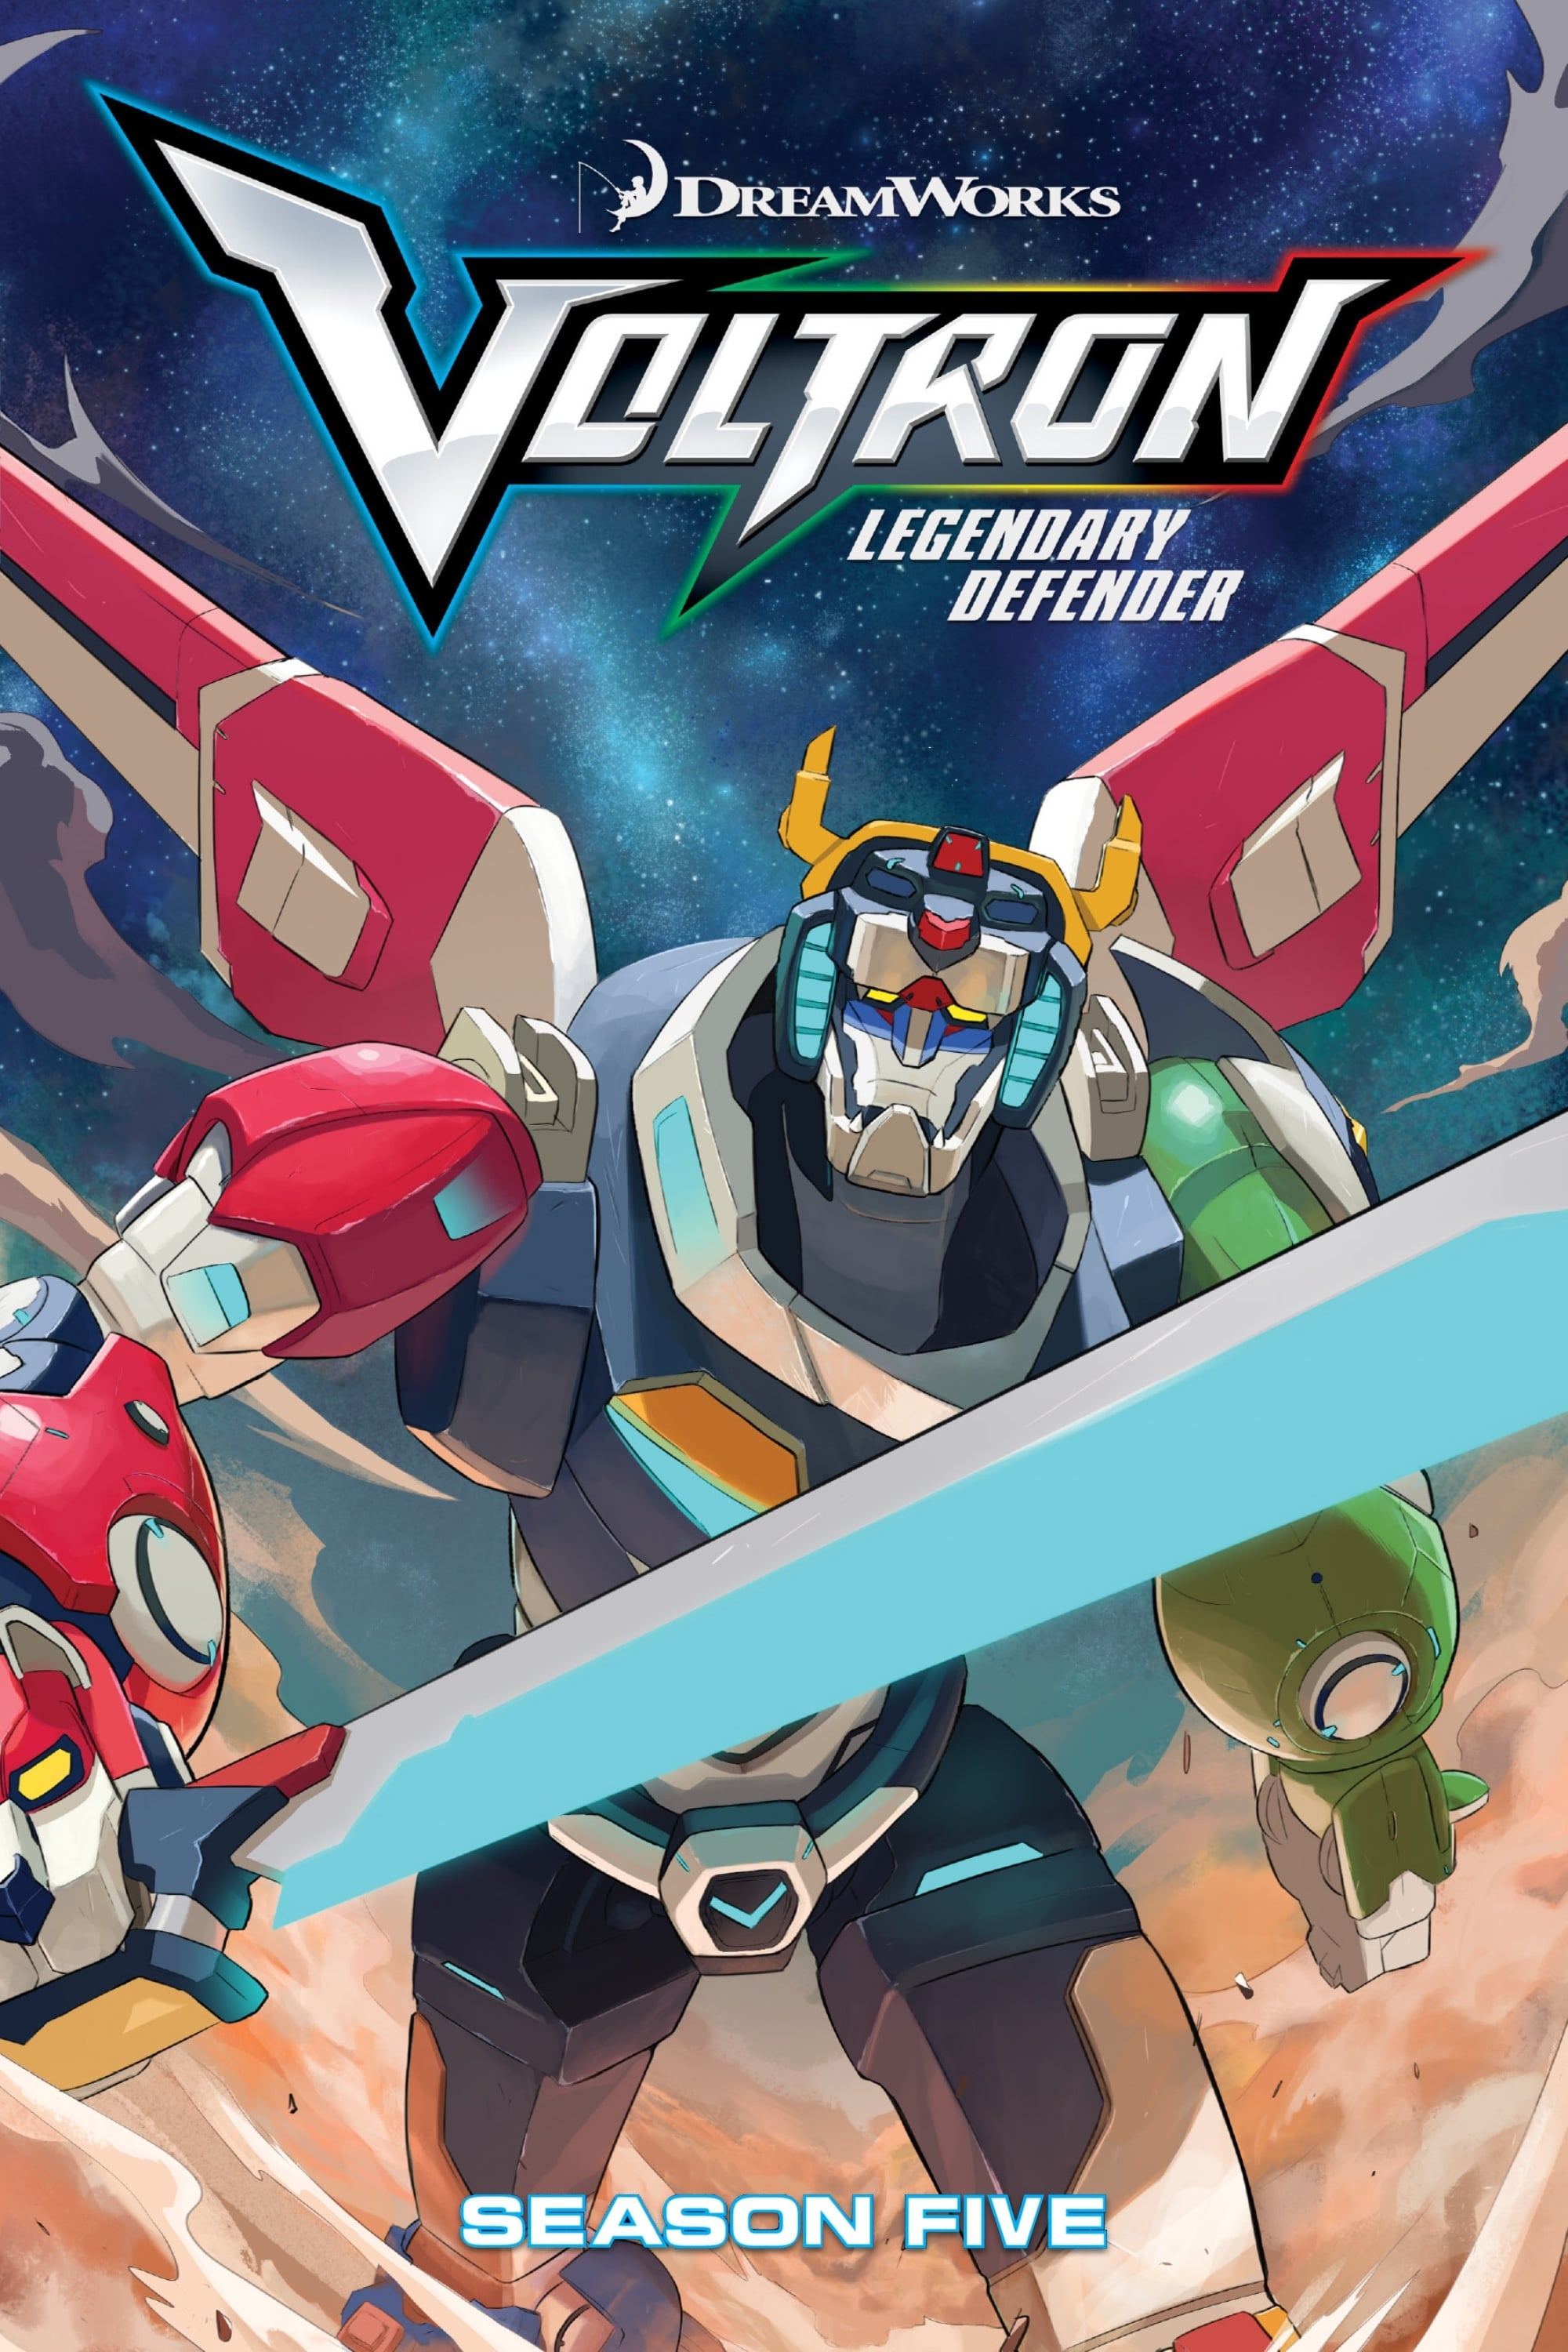 Voltron: Legendary Defender Season 5